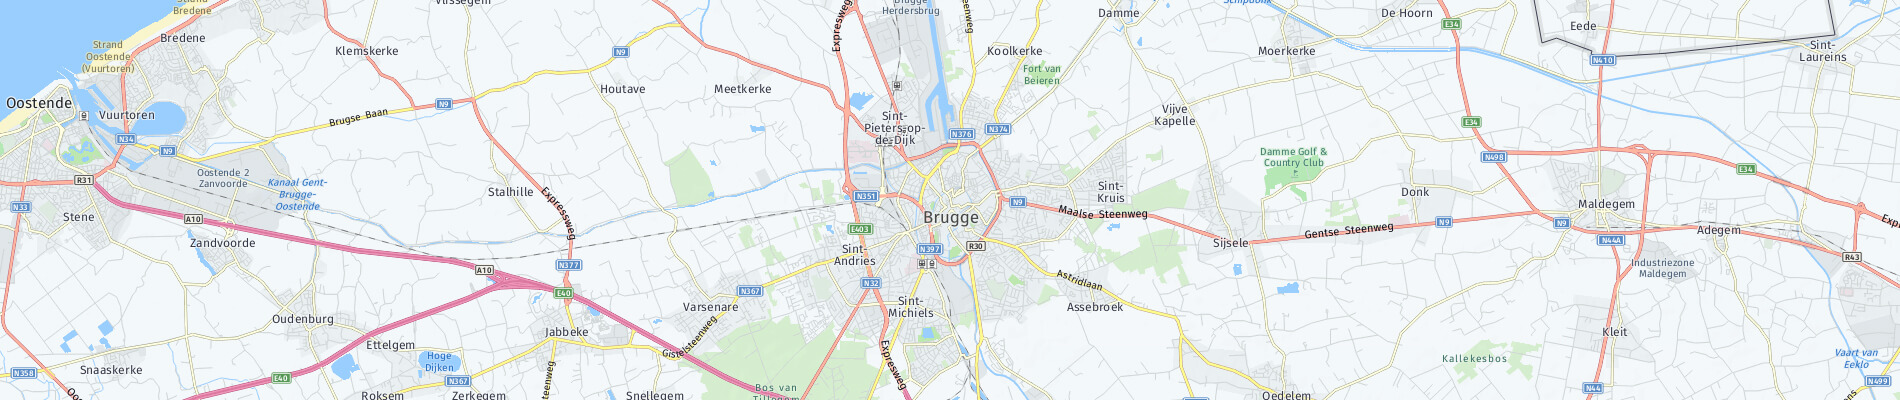 assets/images/cities/brugge.jpg